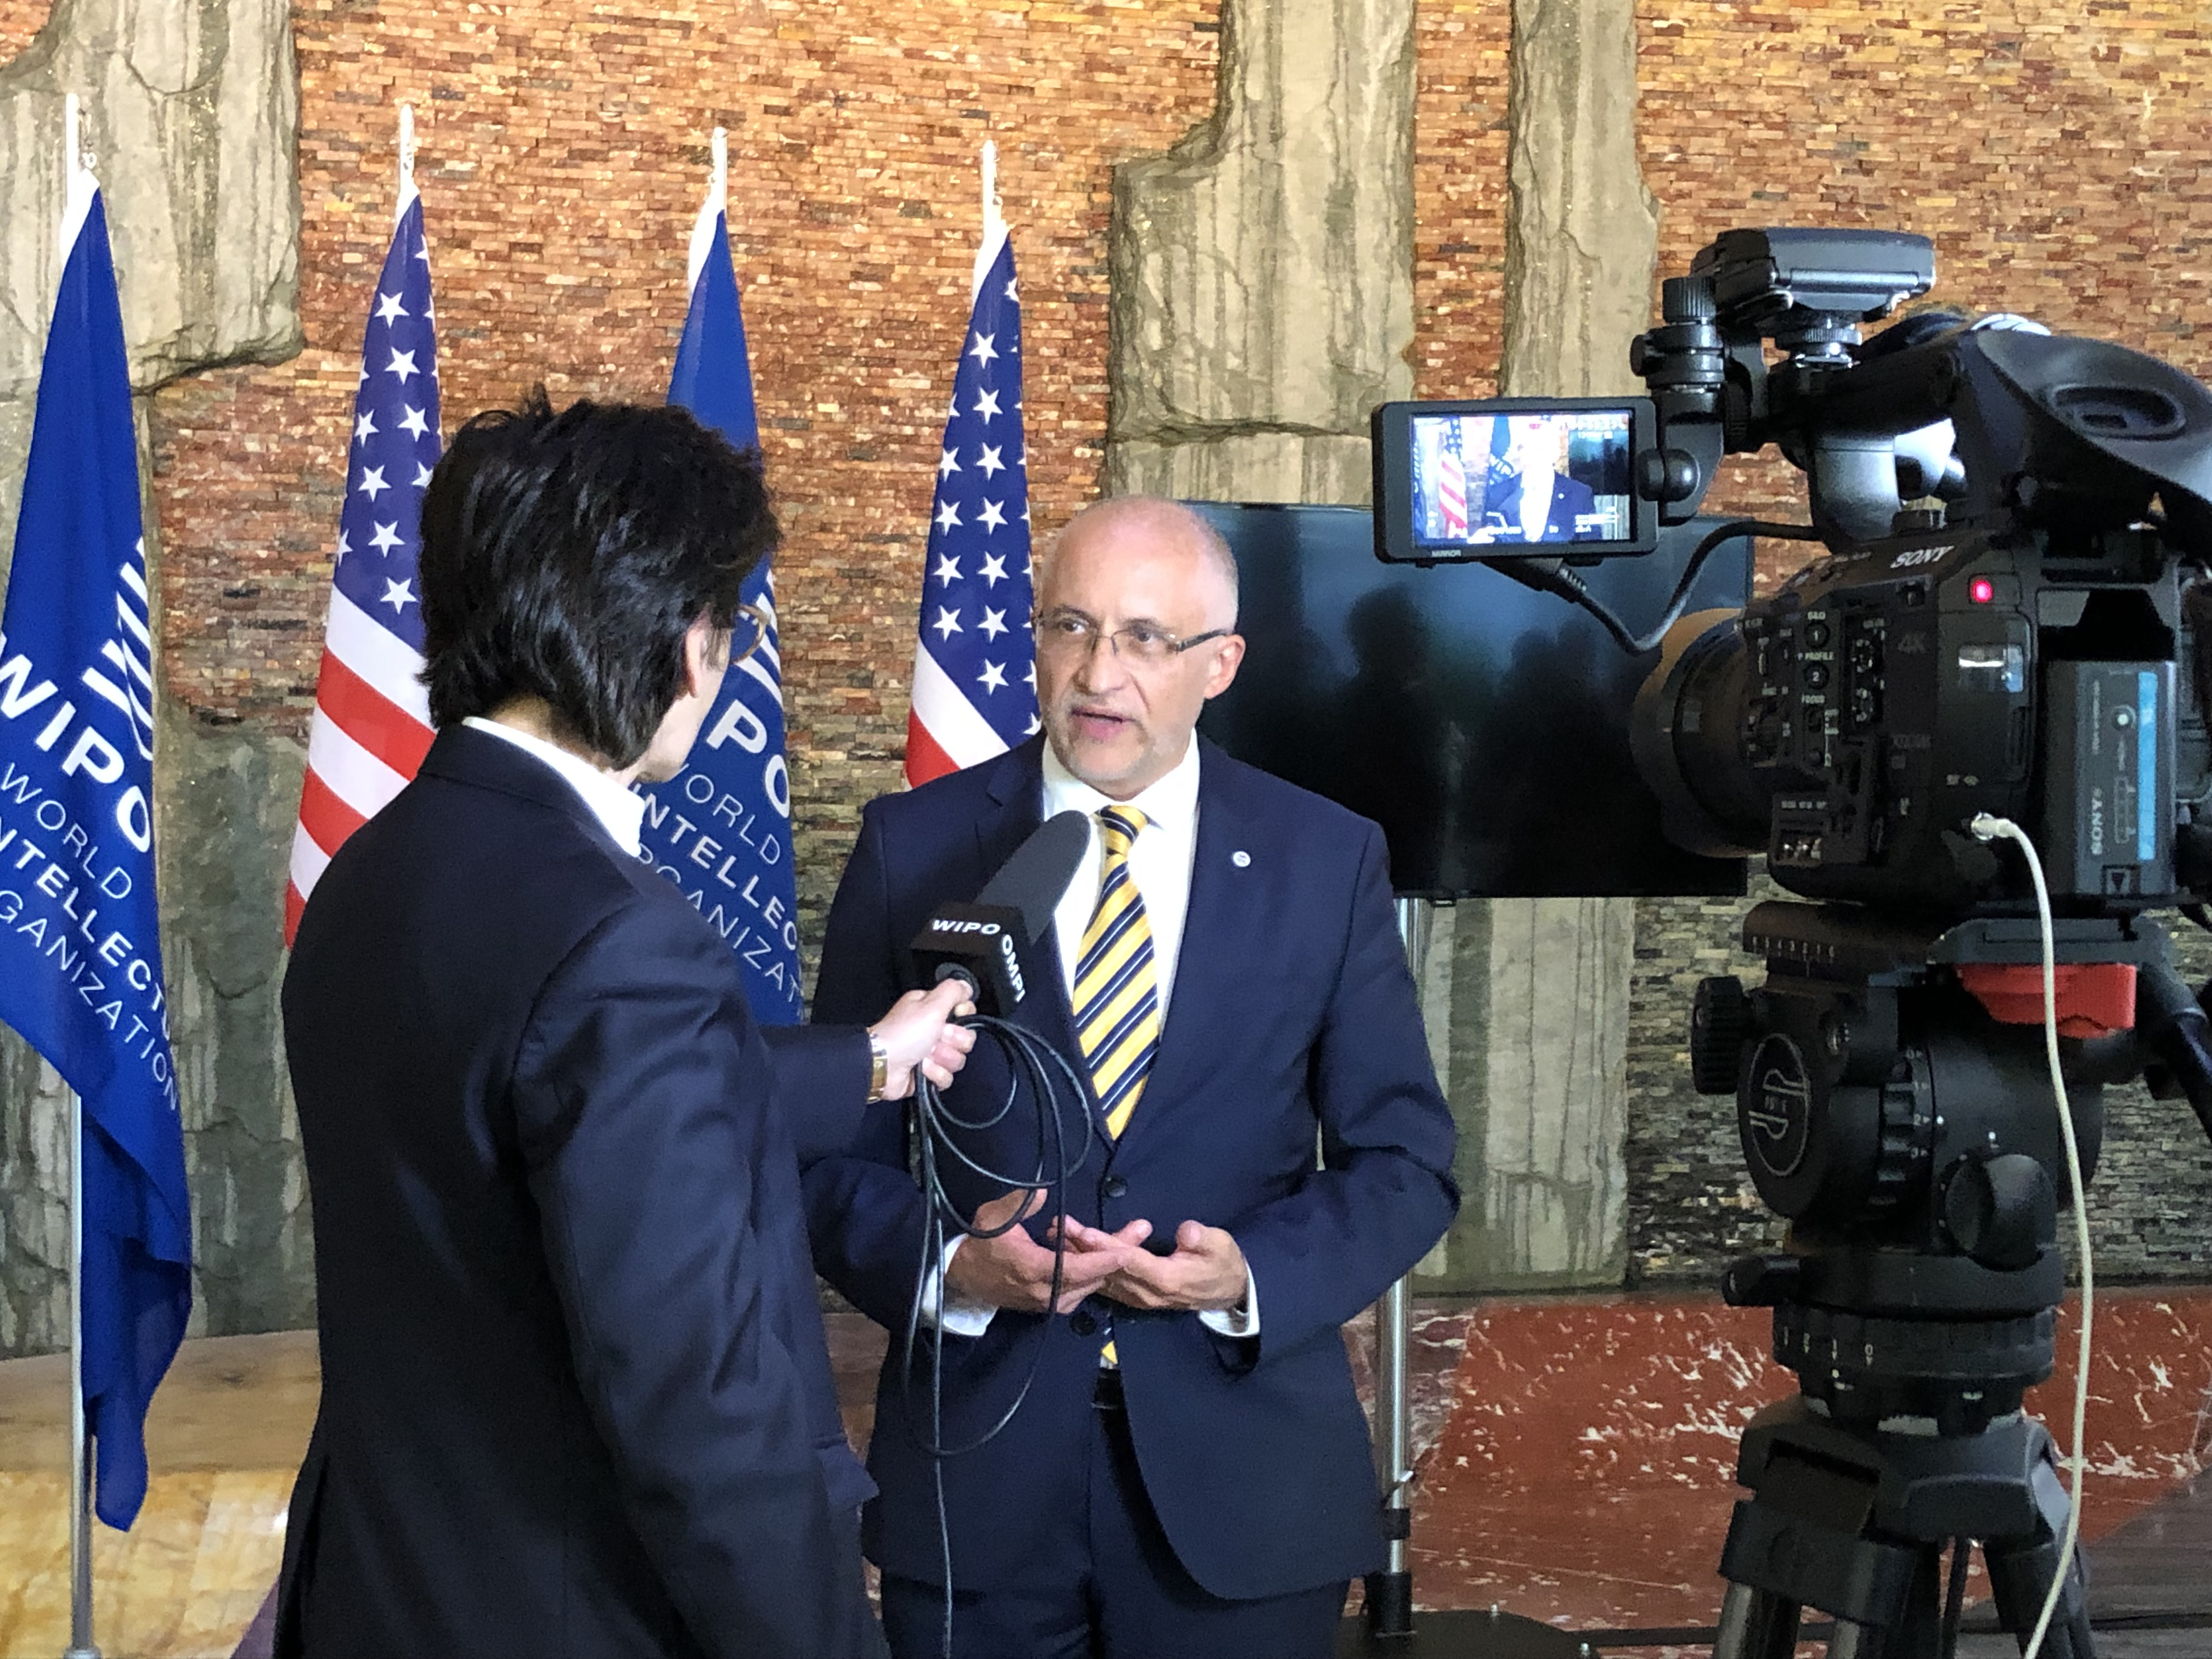 Hugo Setzer interview USA Marrakesh Ratification